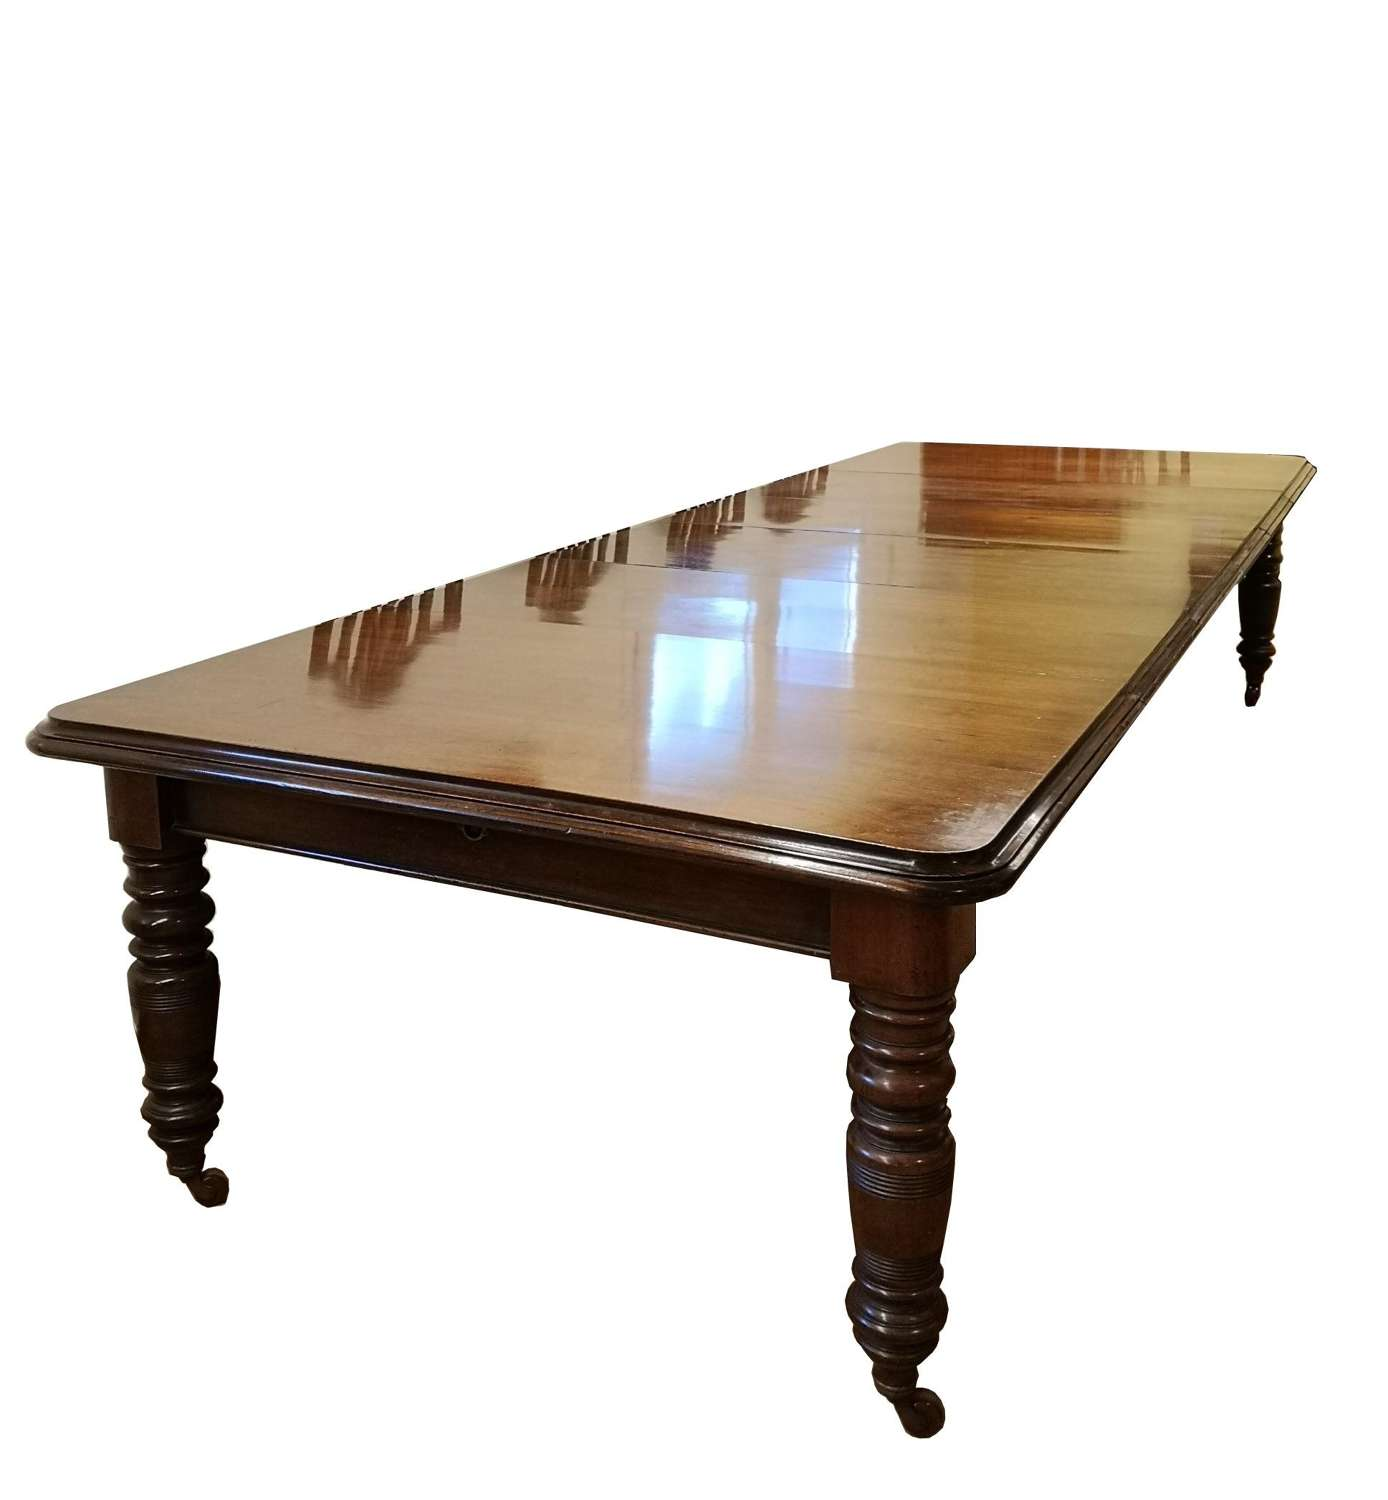 19th century large antique dining table